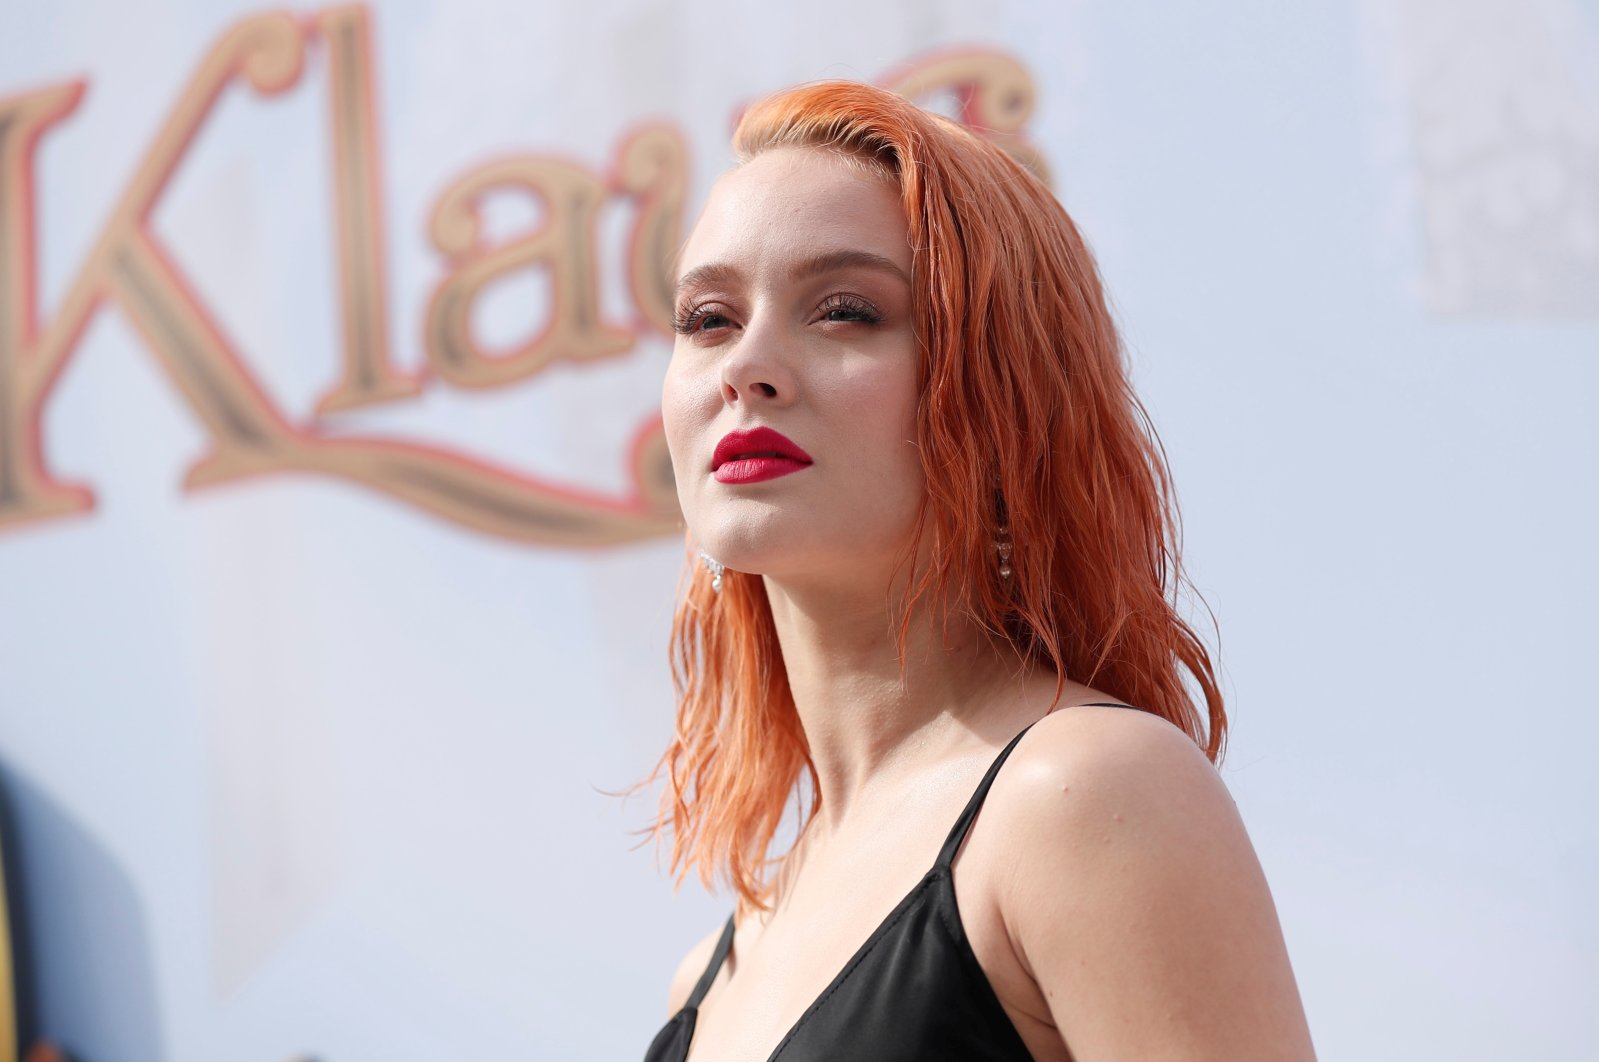 """Original song performer Zara Larsson poses at the premiere for the movie """"Klaus"""" in Los Angeles, California, U.S., Nov. 2, 2019. (Reuters Photo)"""